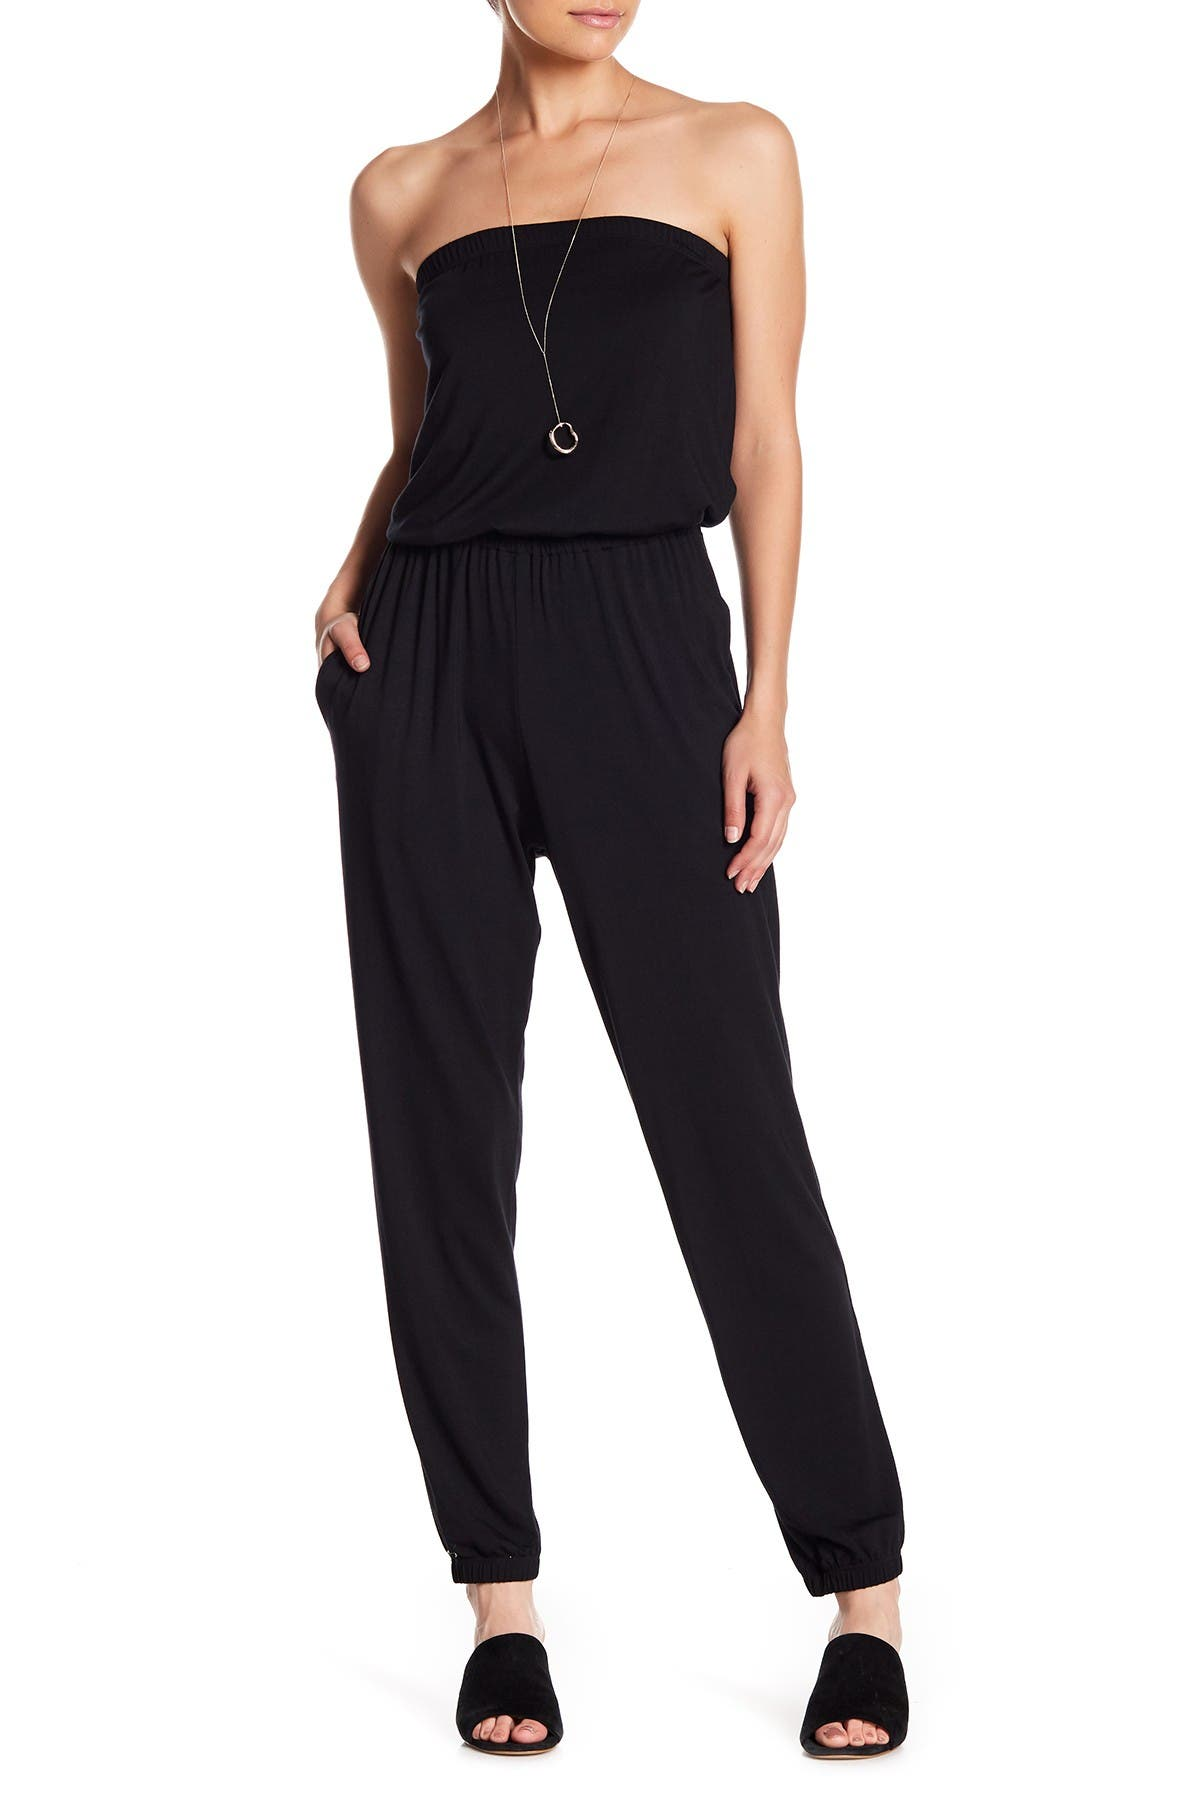 Image of Go Couture Kaitlyn Strapless Jumpsuit